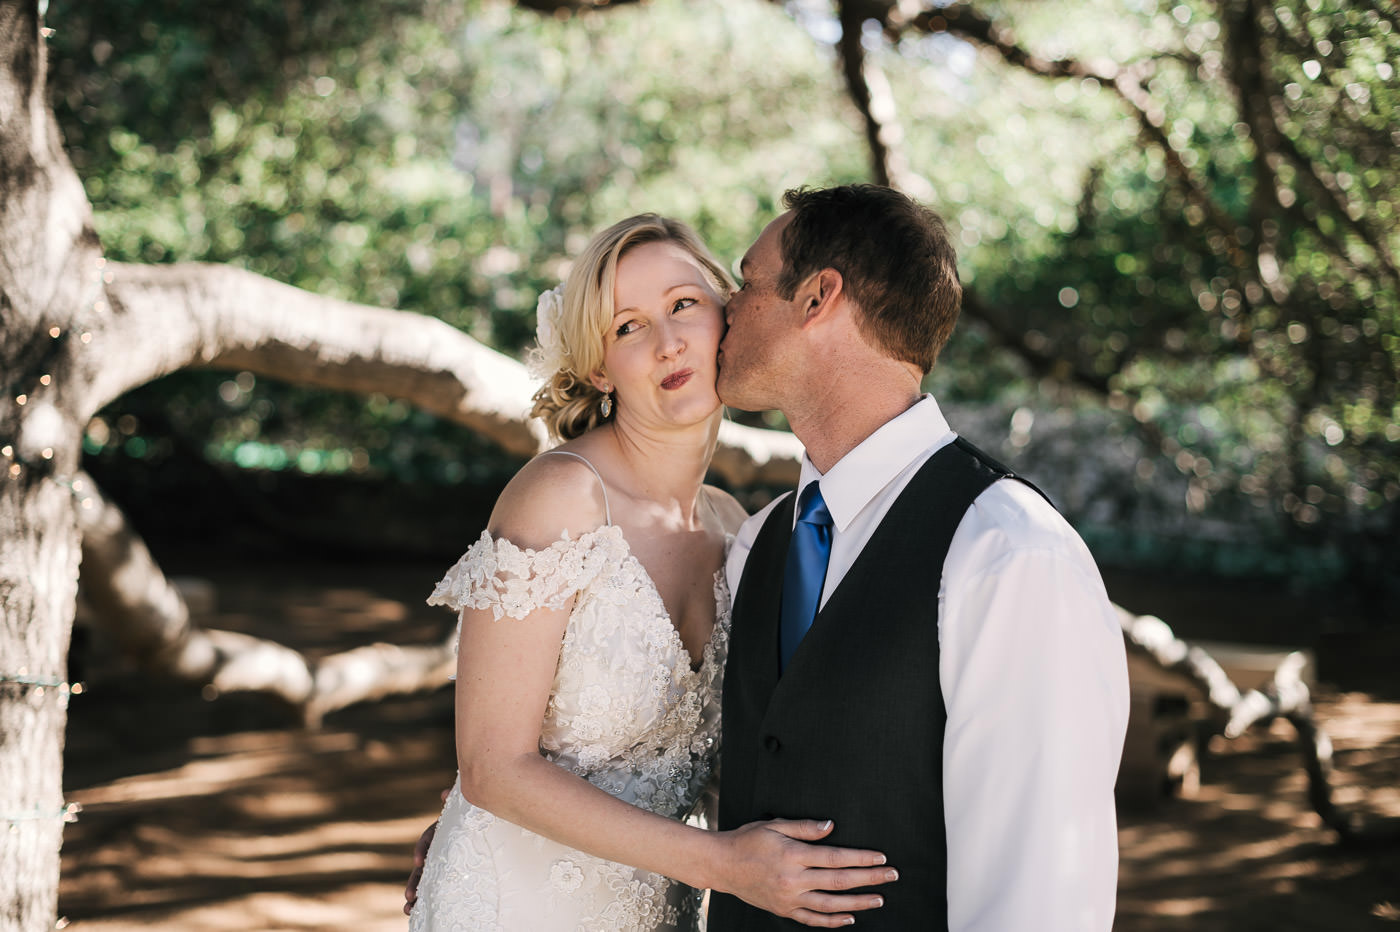 groom gives his bride a loving kiss on the cheek before they head off to the wedding ceremony at the whispering oaks terrace in temecula california